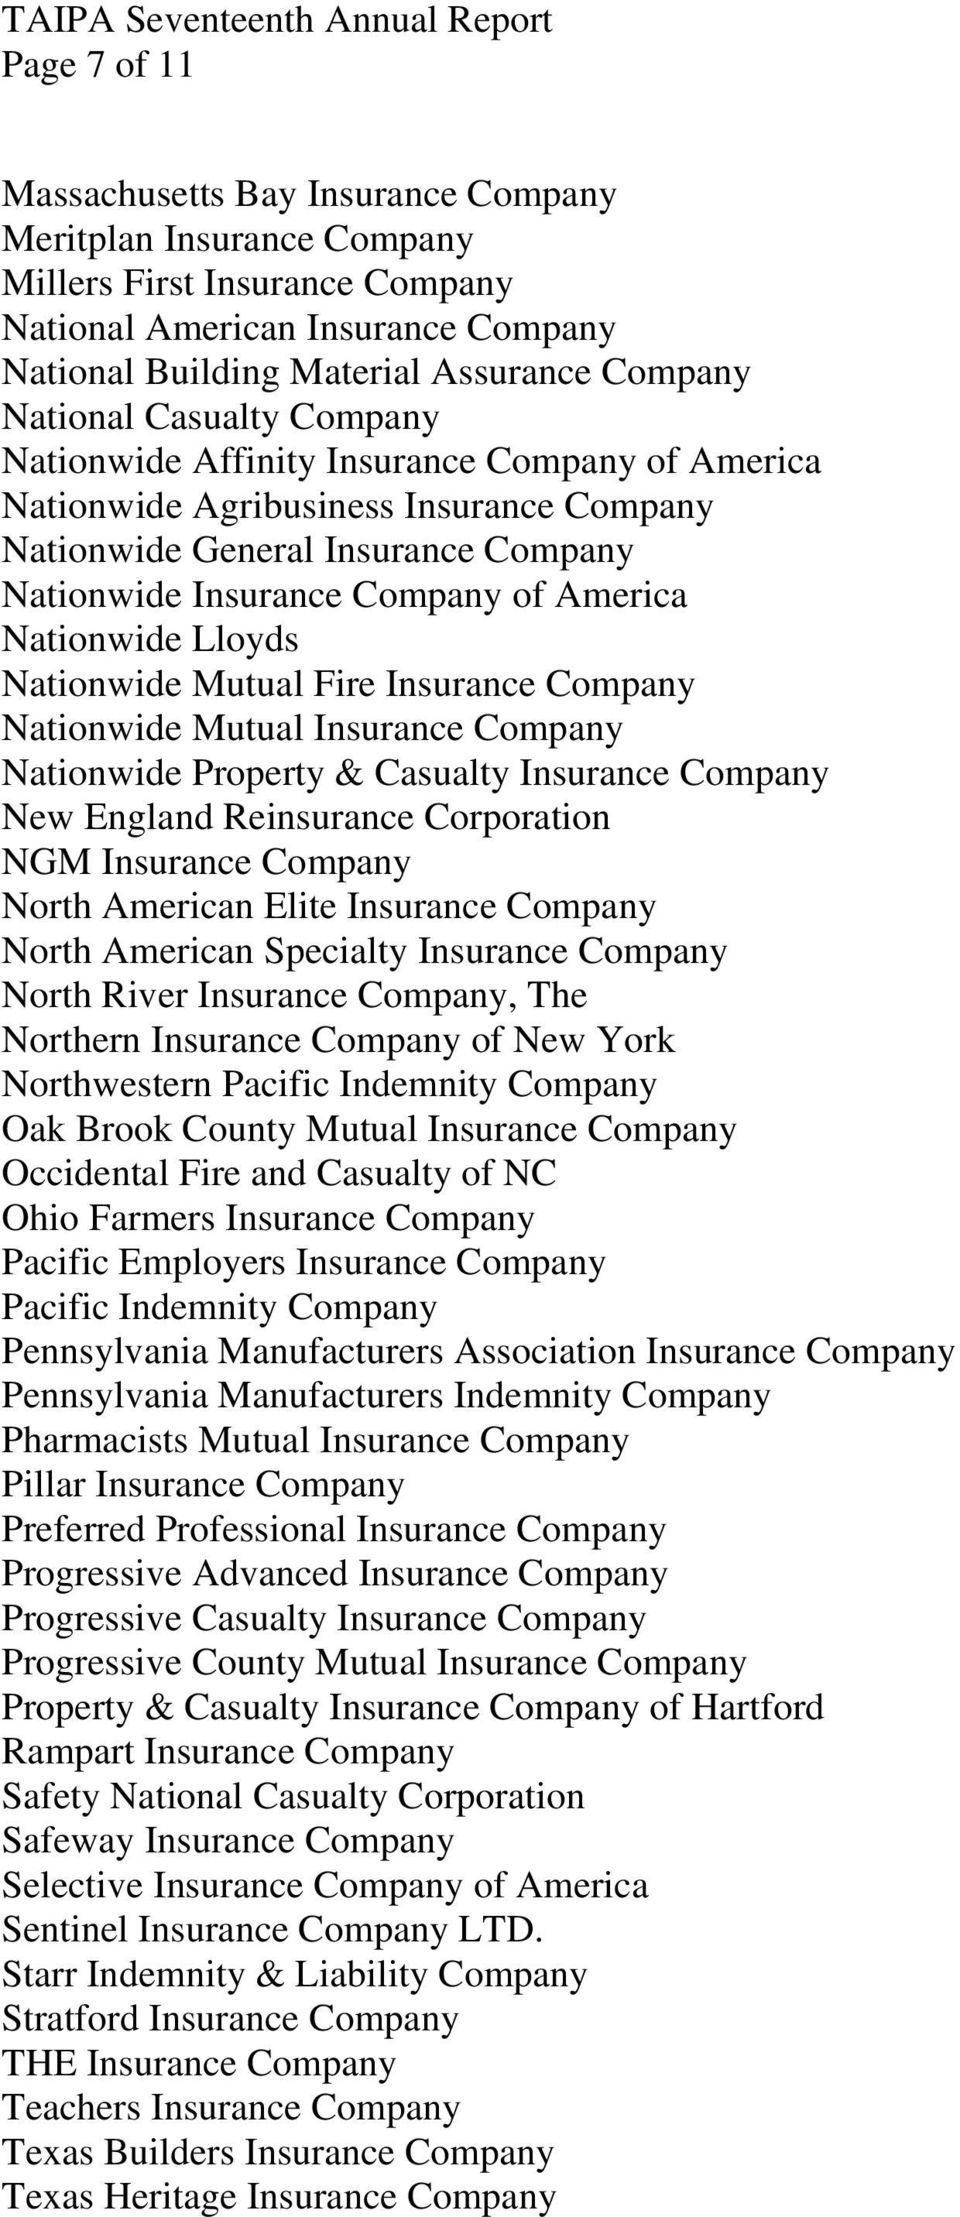 Lloyds Nationwide Mutual Fire Insurance Company Nationwide Mutual Insurance Company Nationwide Property & Casualty Insurance Company New England Reinsurance Corporation NGM Insurance Company North